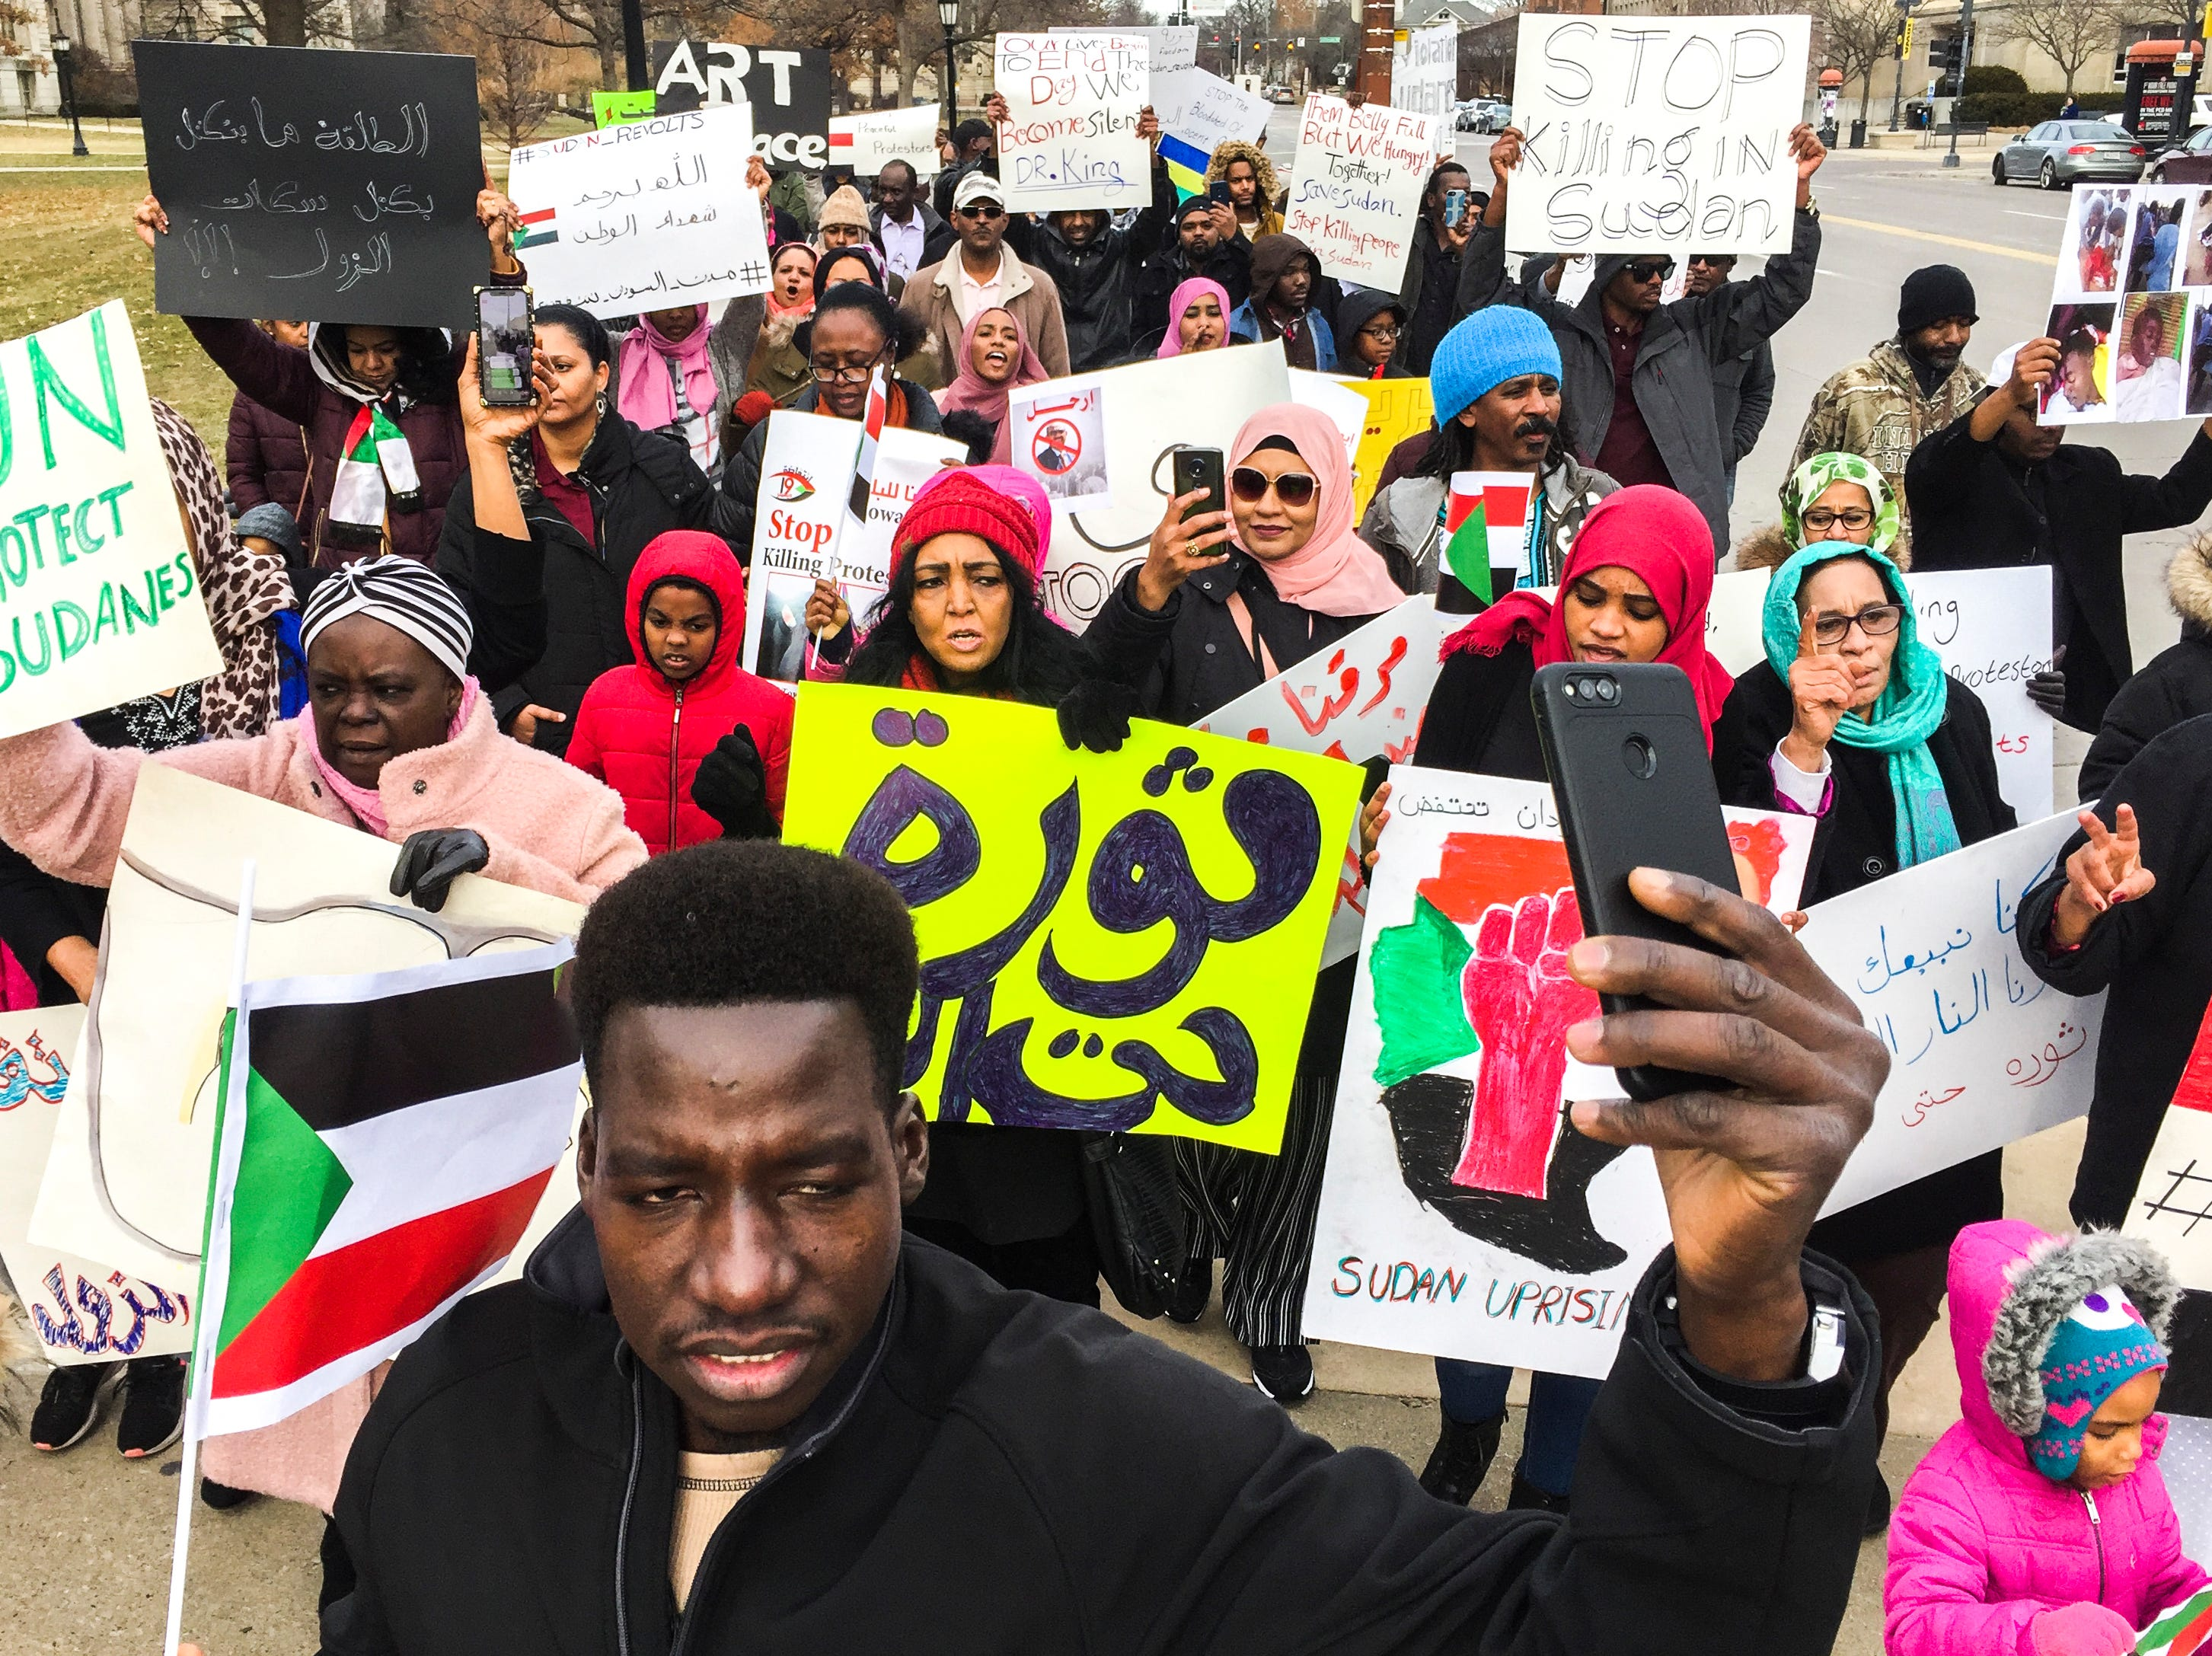 Sudanese refugee Aziz Ali, 28, records a livestream while he marches with members of the Iowa City community during a peaceful protest in opposition to the killings in Sudan on Monday, Dec. 24, 2018, in downtown Iowa City.